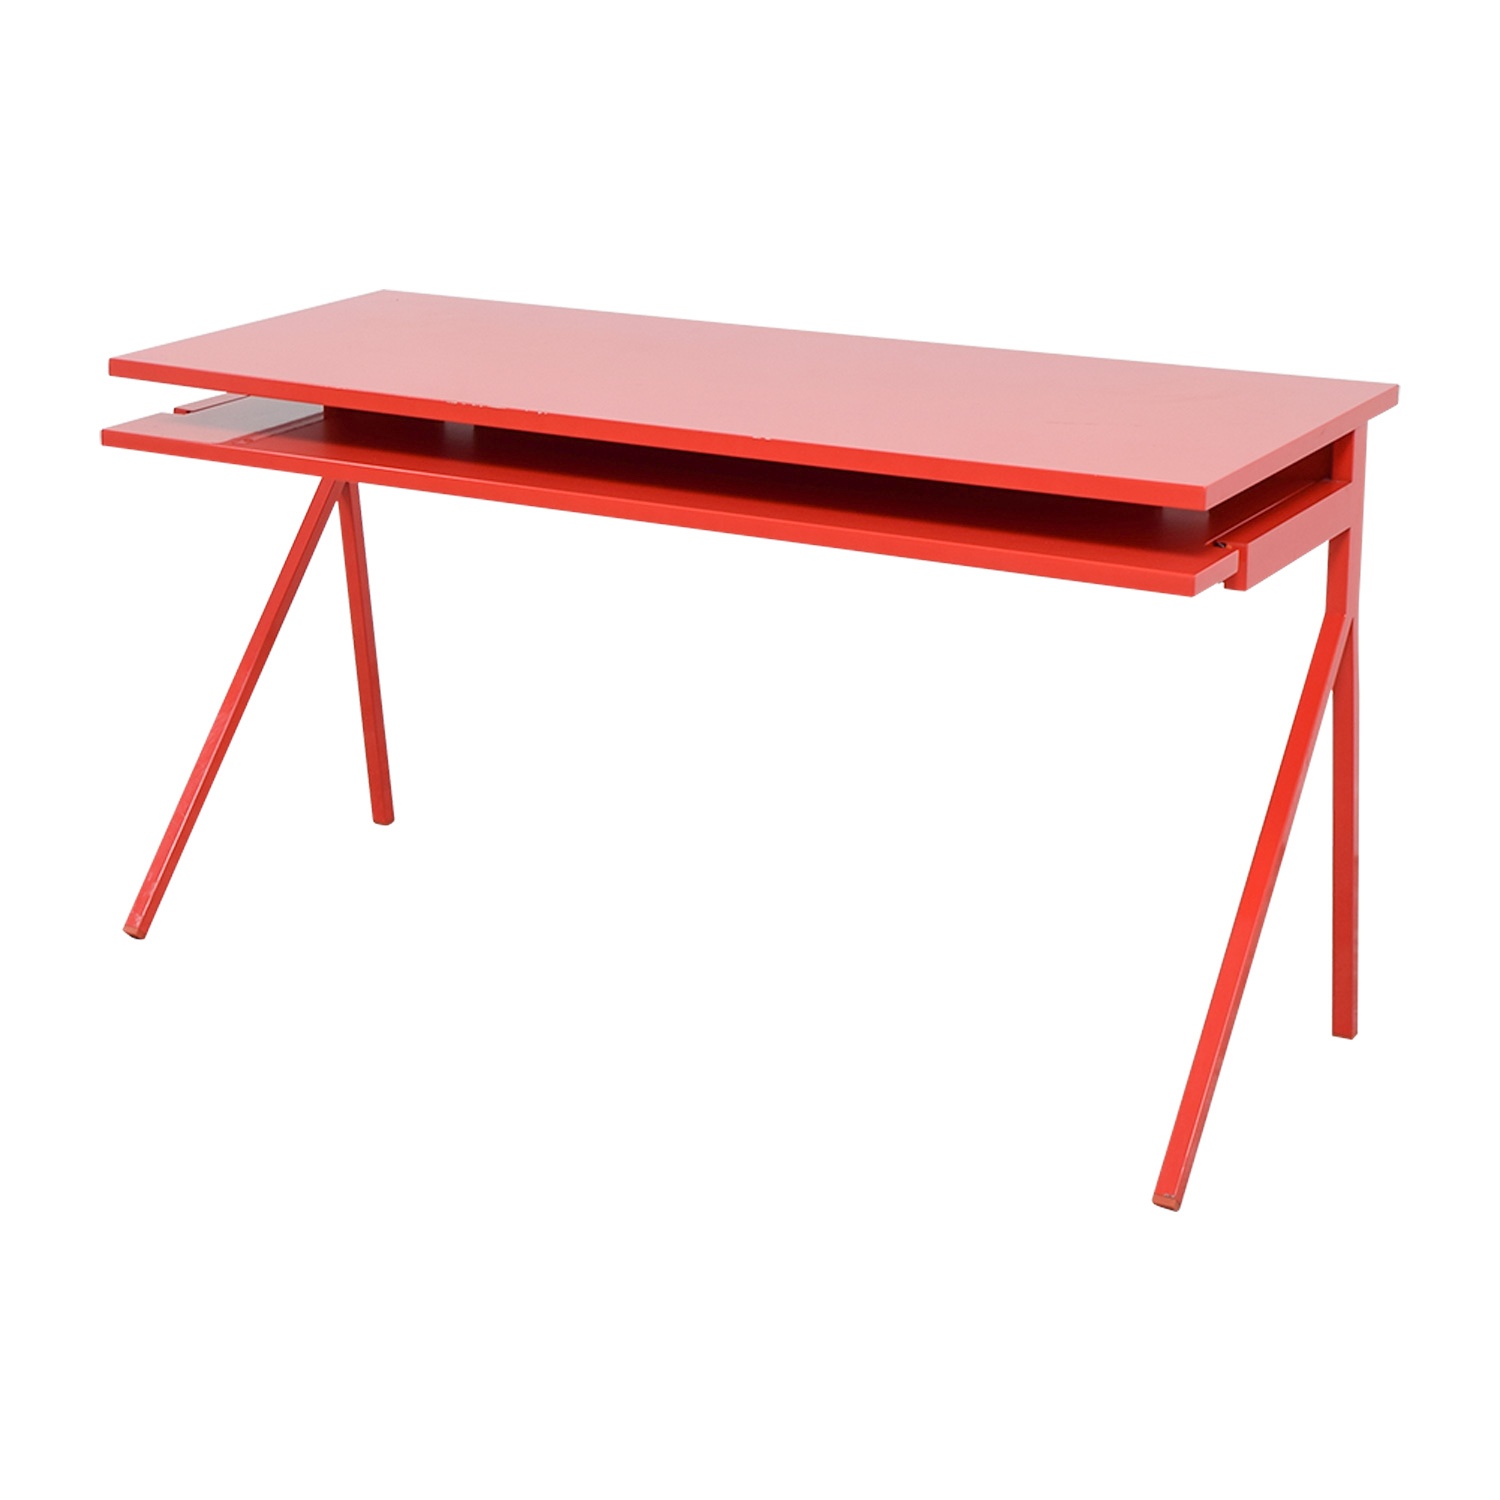 Blu Dot Blu Dot Red Desk 51 dimensions